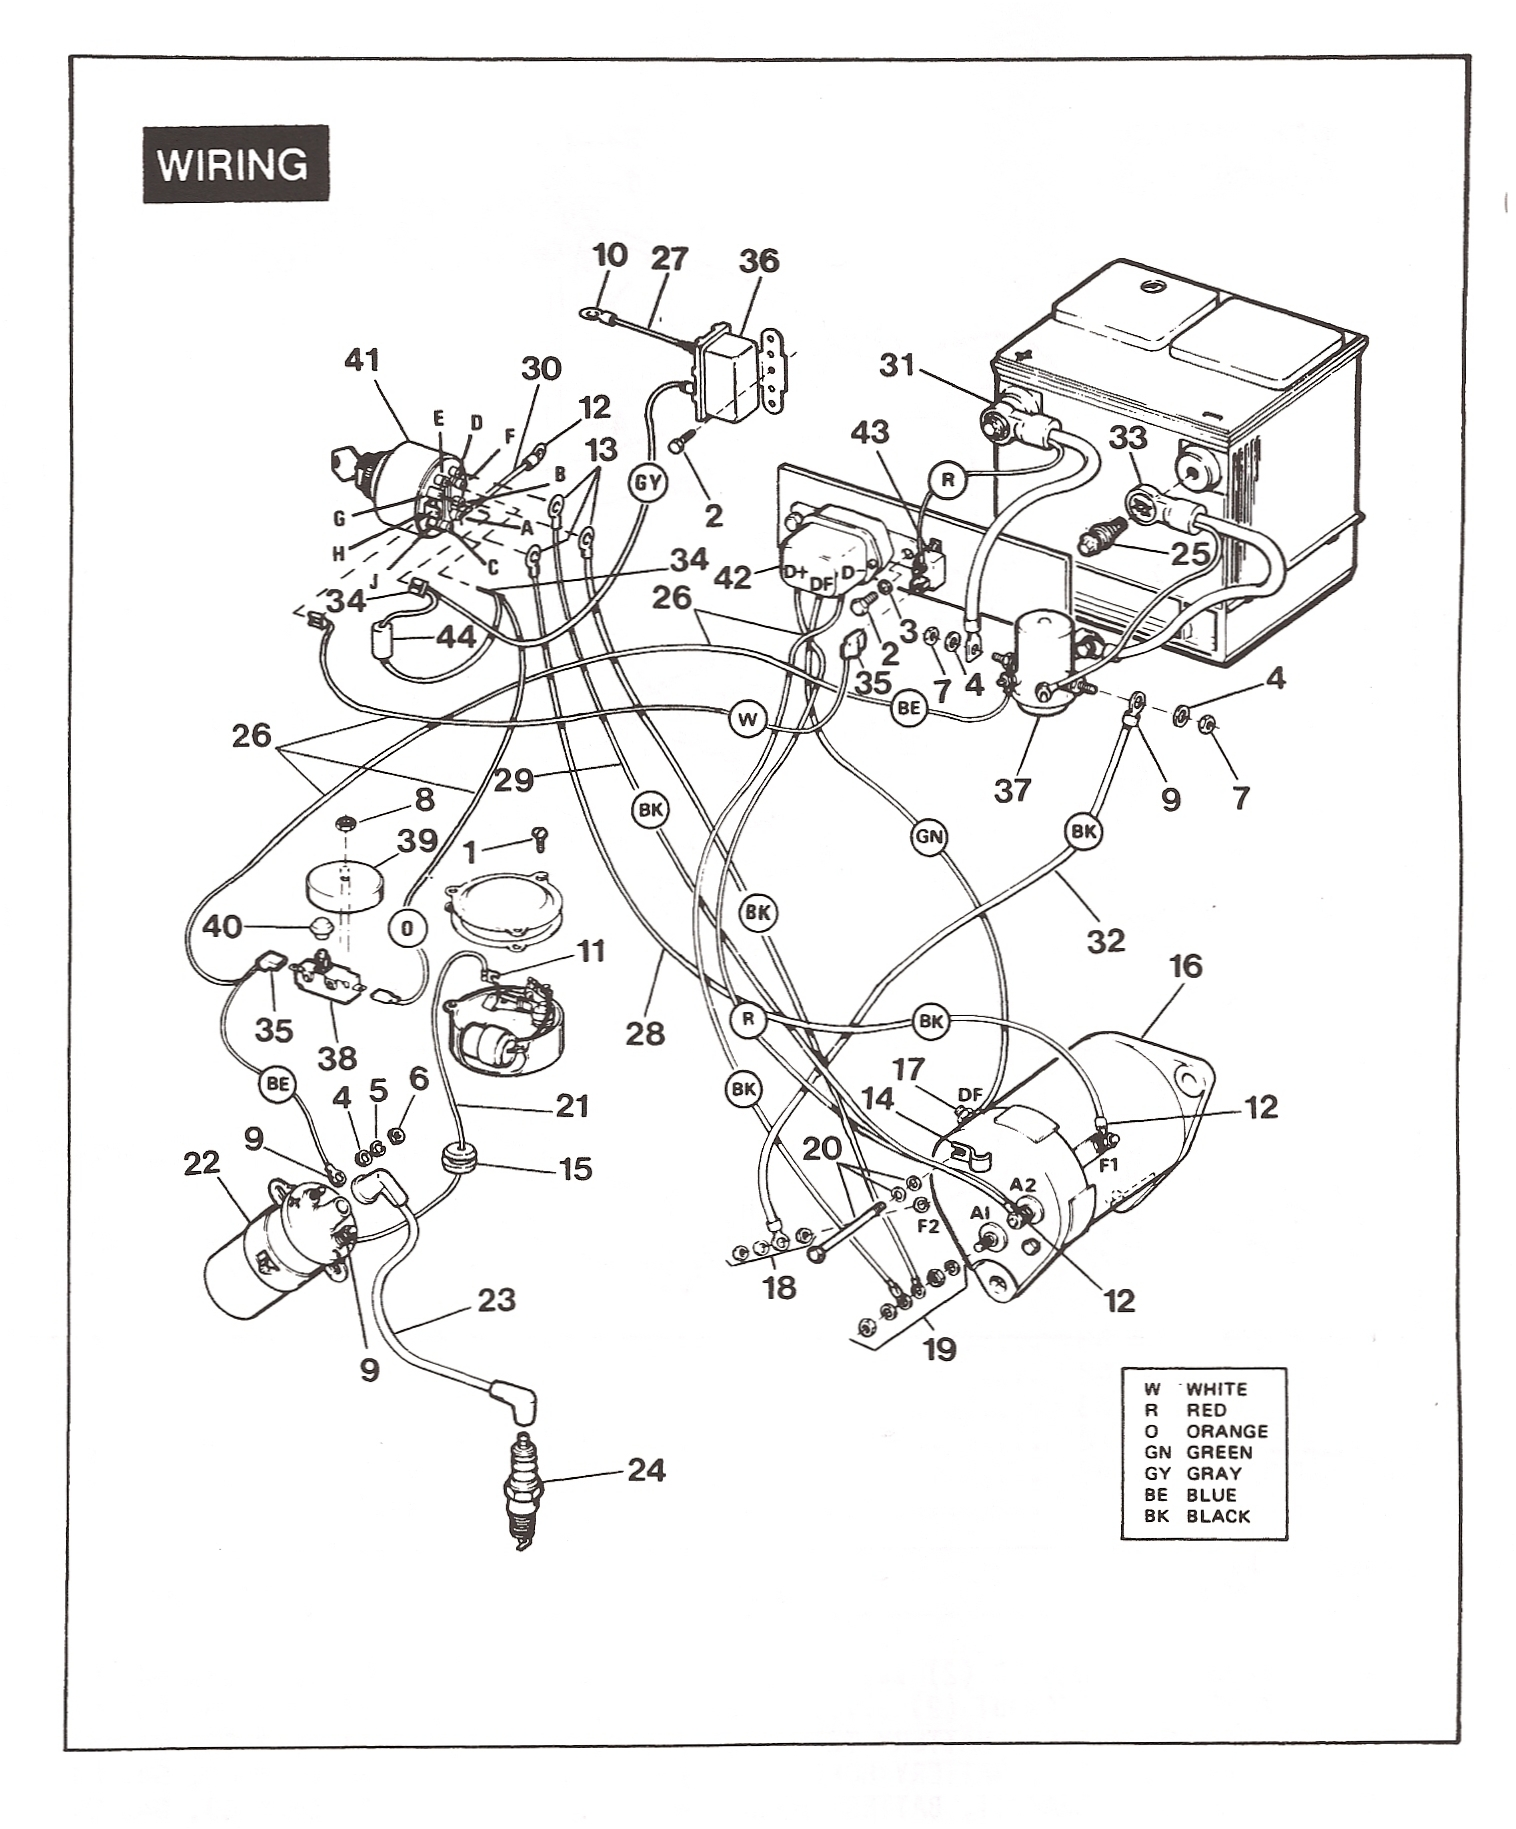 96845 Columbia Par Car Engine Fix Sell Good Crank 2 on harley davidson wiring diagram free